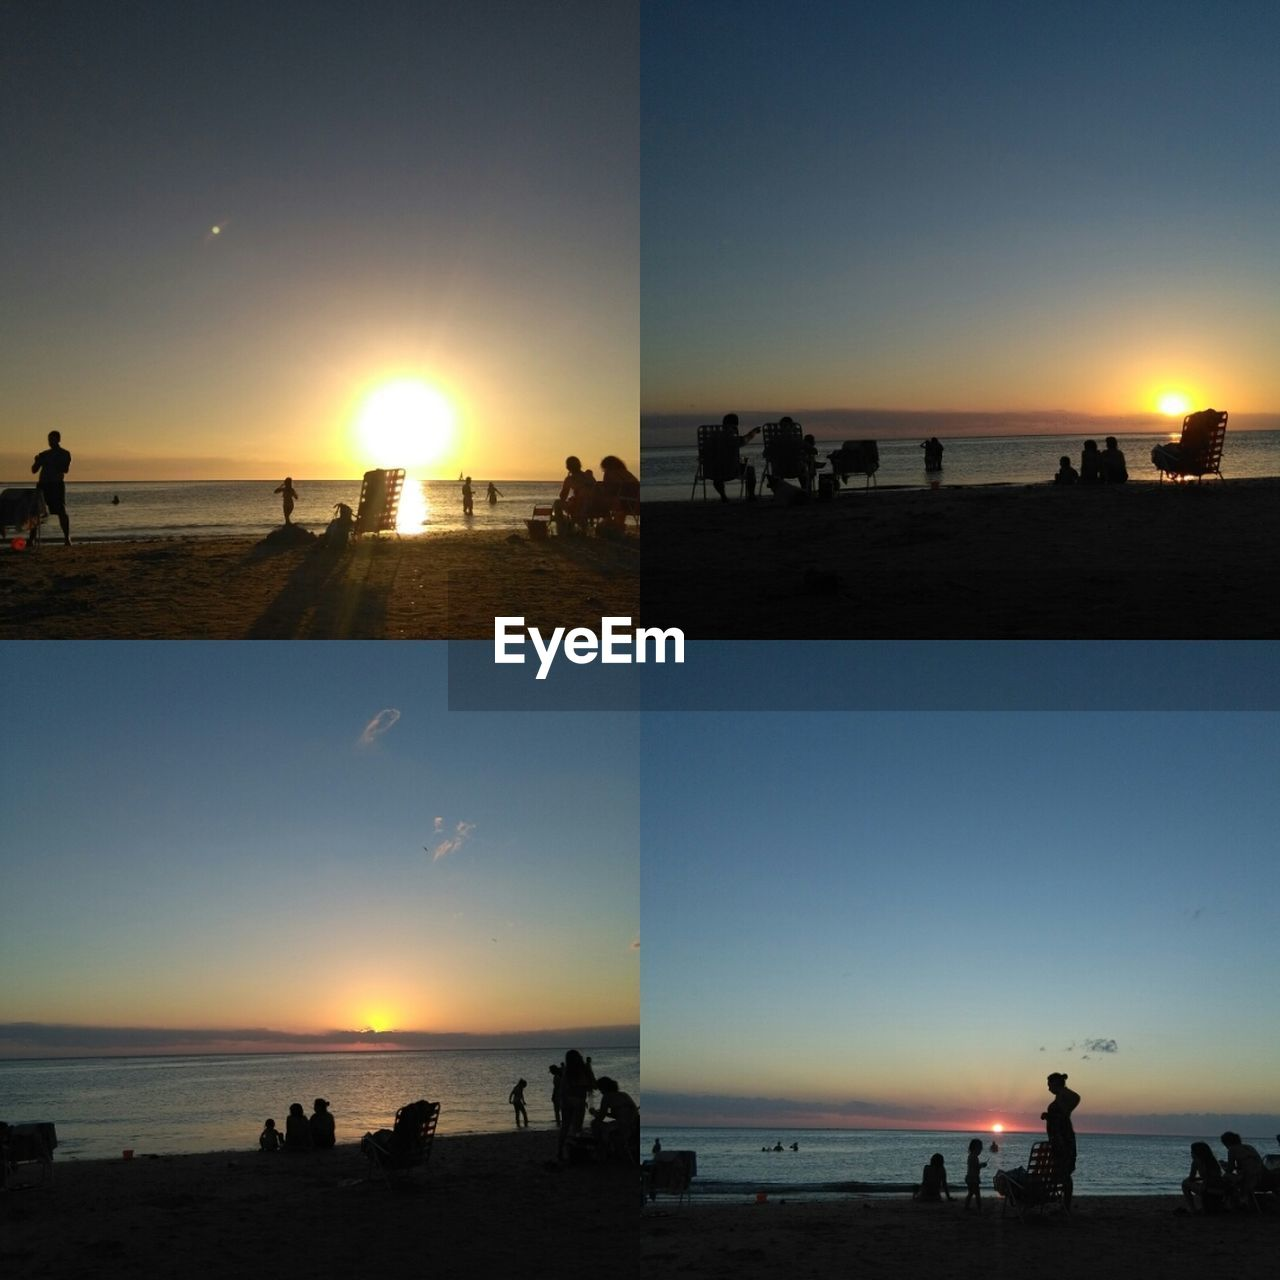 sunset, large group of people, beach, sea, water, real people, silhouette, sun, leisure activity, horizon over water, incidental people, vacations, beauty in nature, mixed age range, sky, nature, women, men, lifestyles, outdoors, weekend activities, enjoyment, scenics, clear sky, sand, travel destinations, collage, tree, day, people